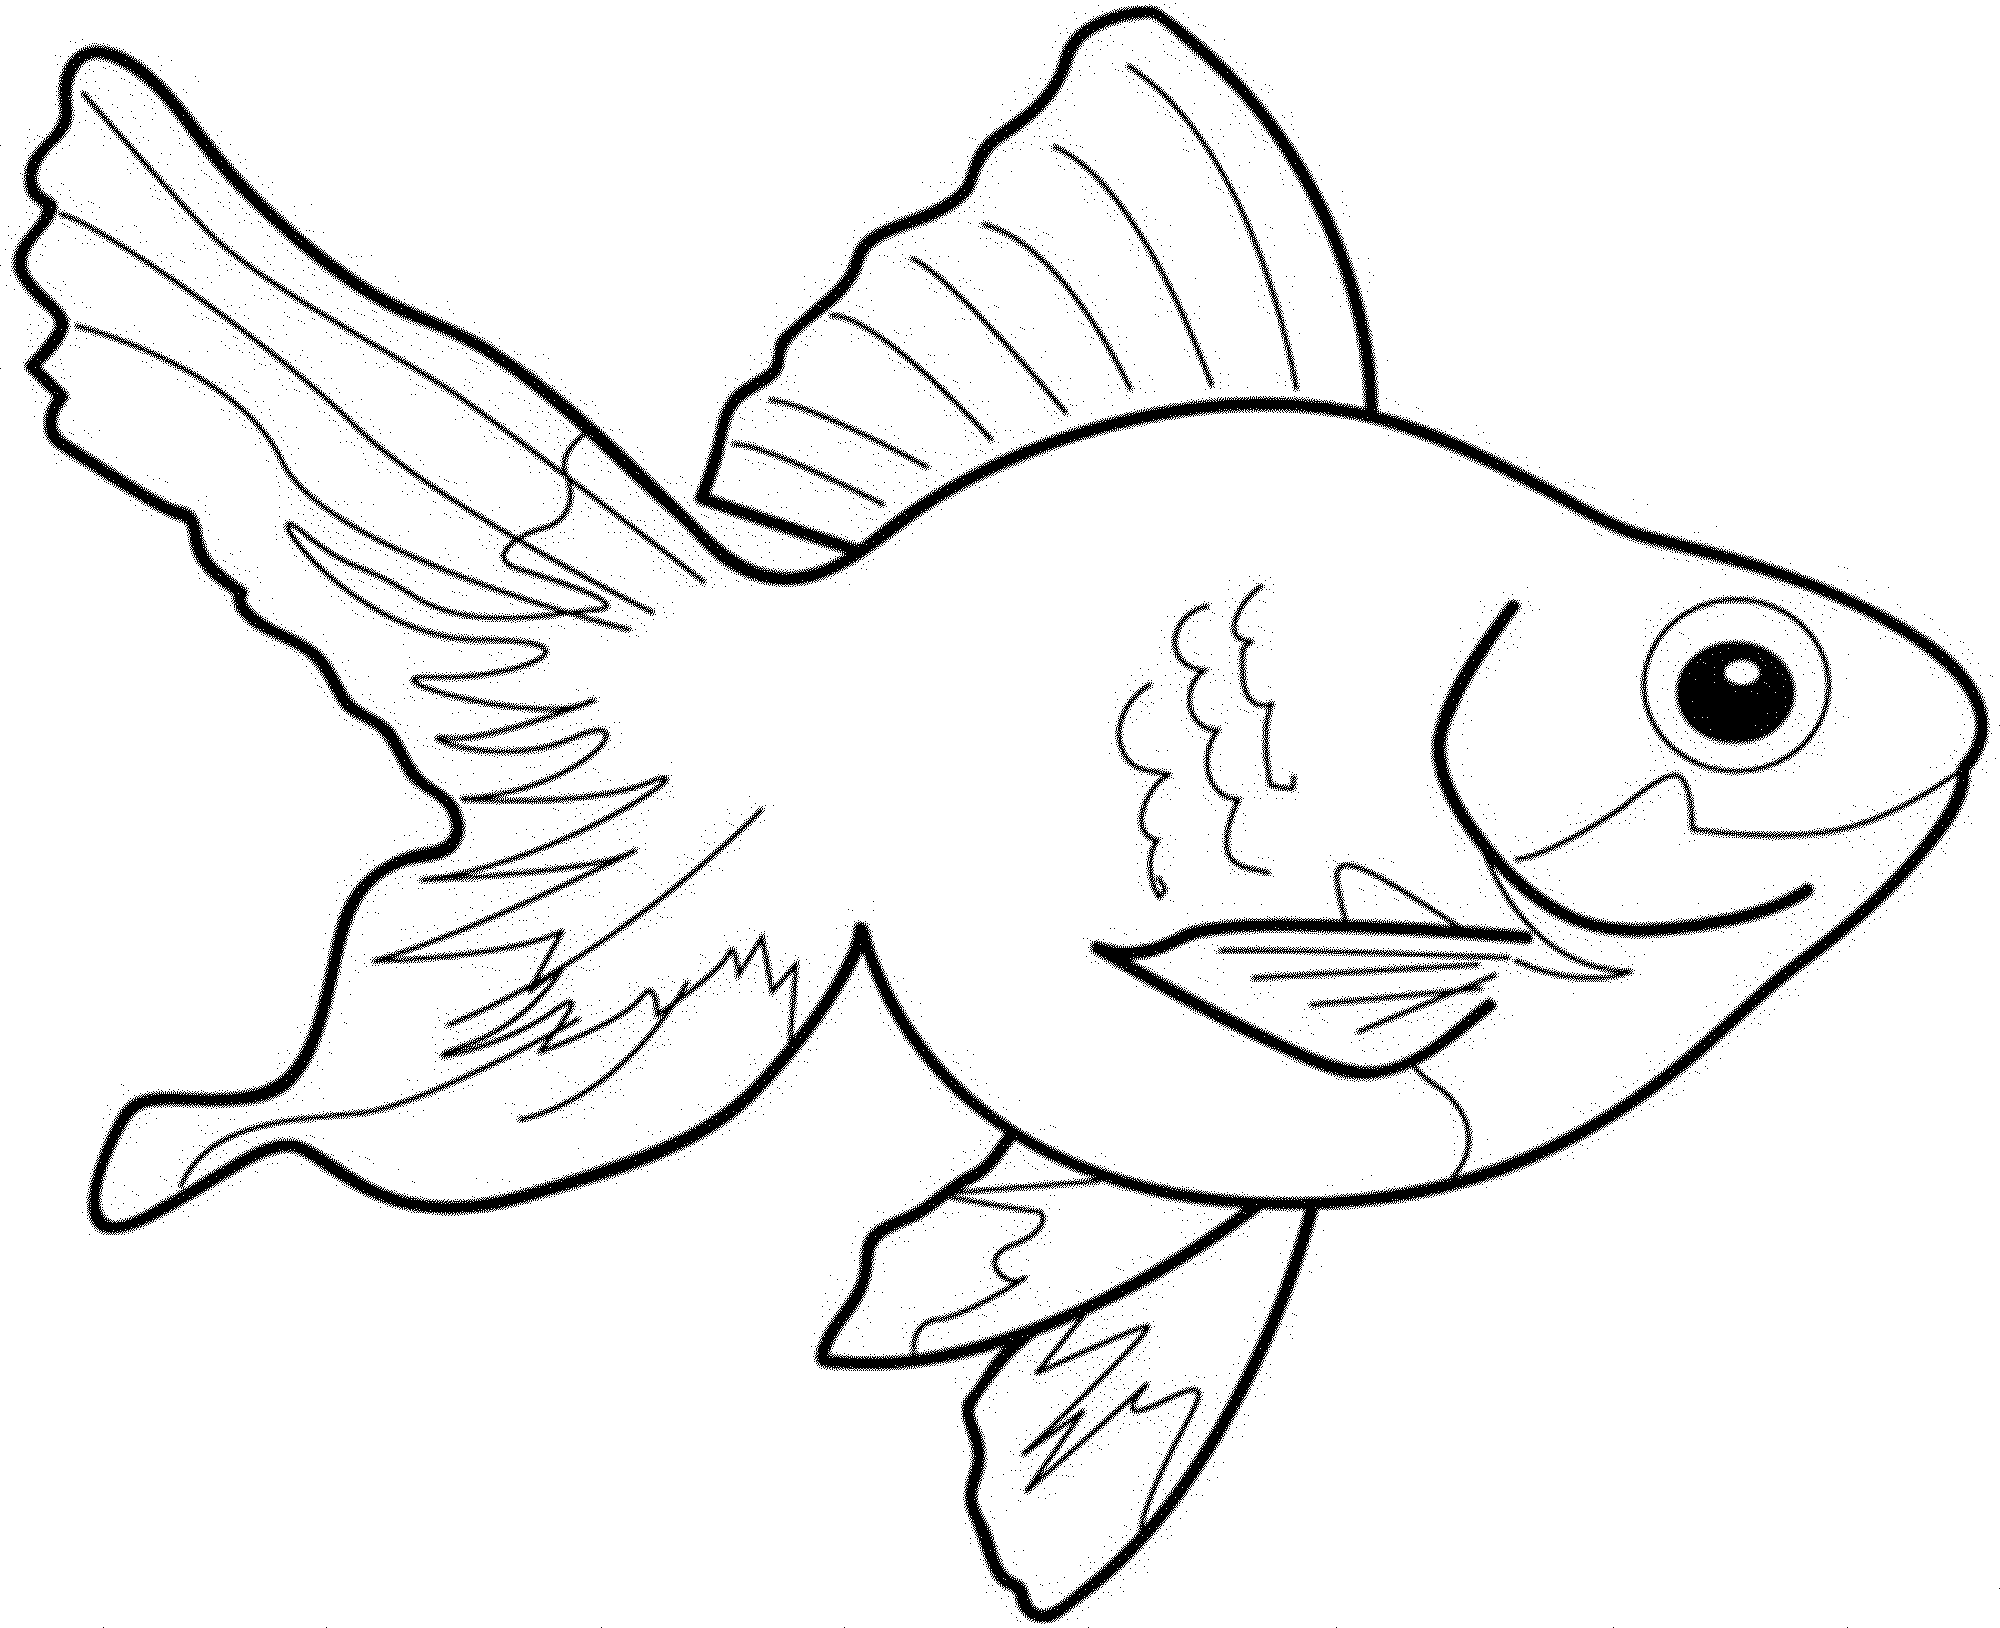 Fish Coloring Book Fish Coloring Page Owl Coloring Pages Free Coloring Pages